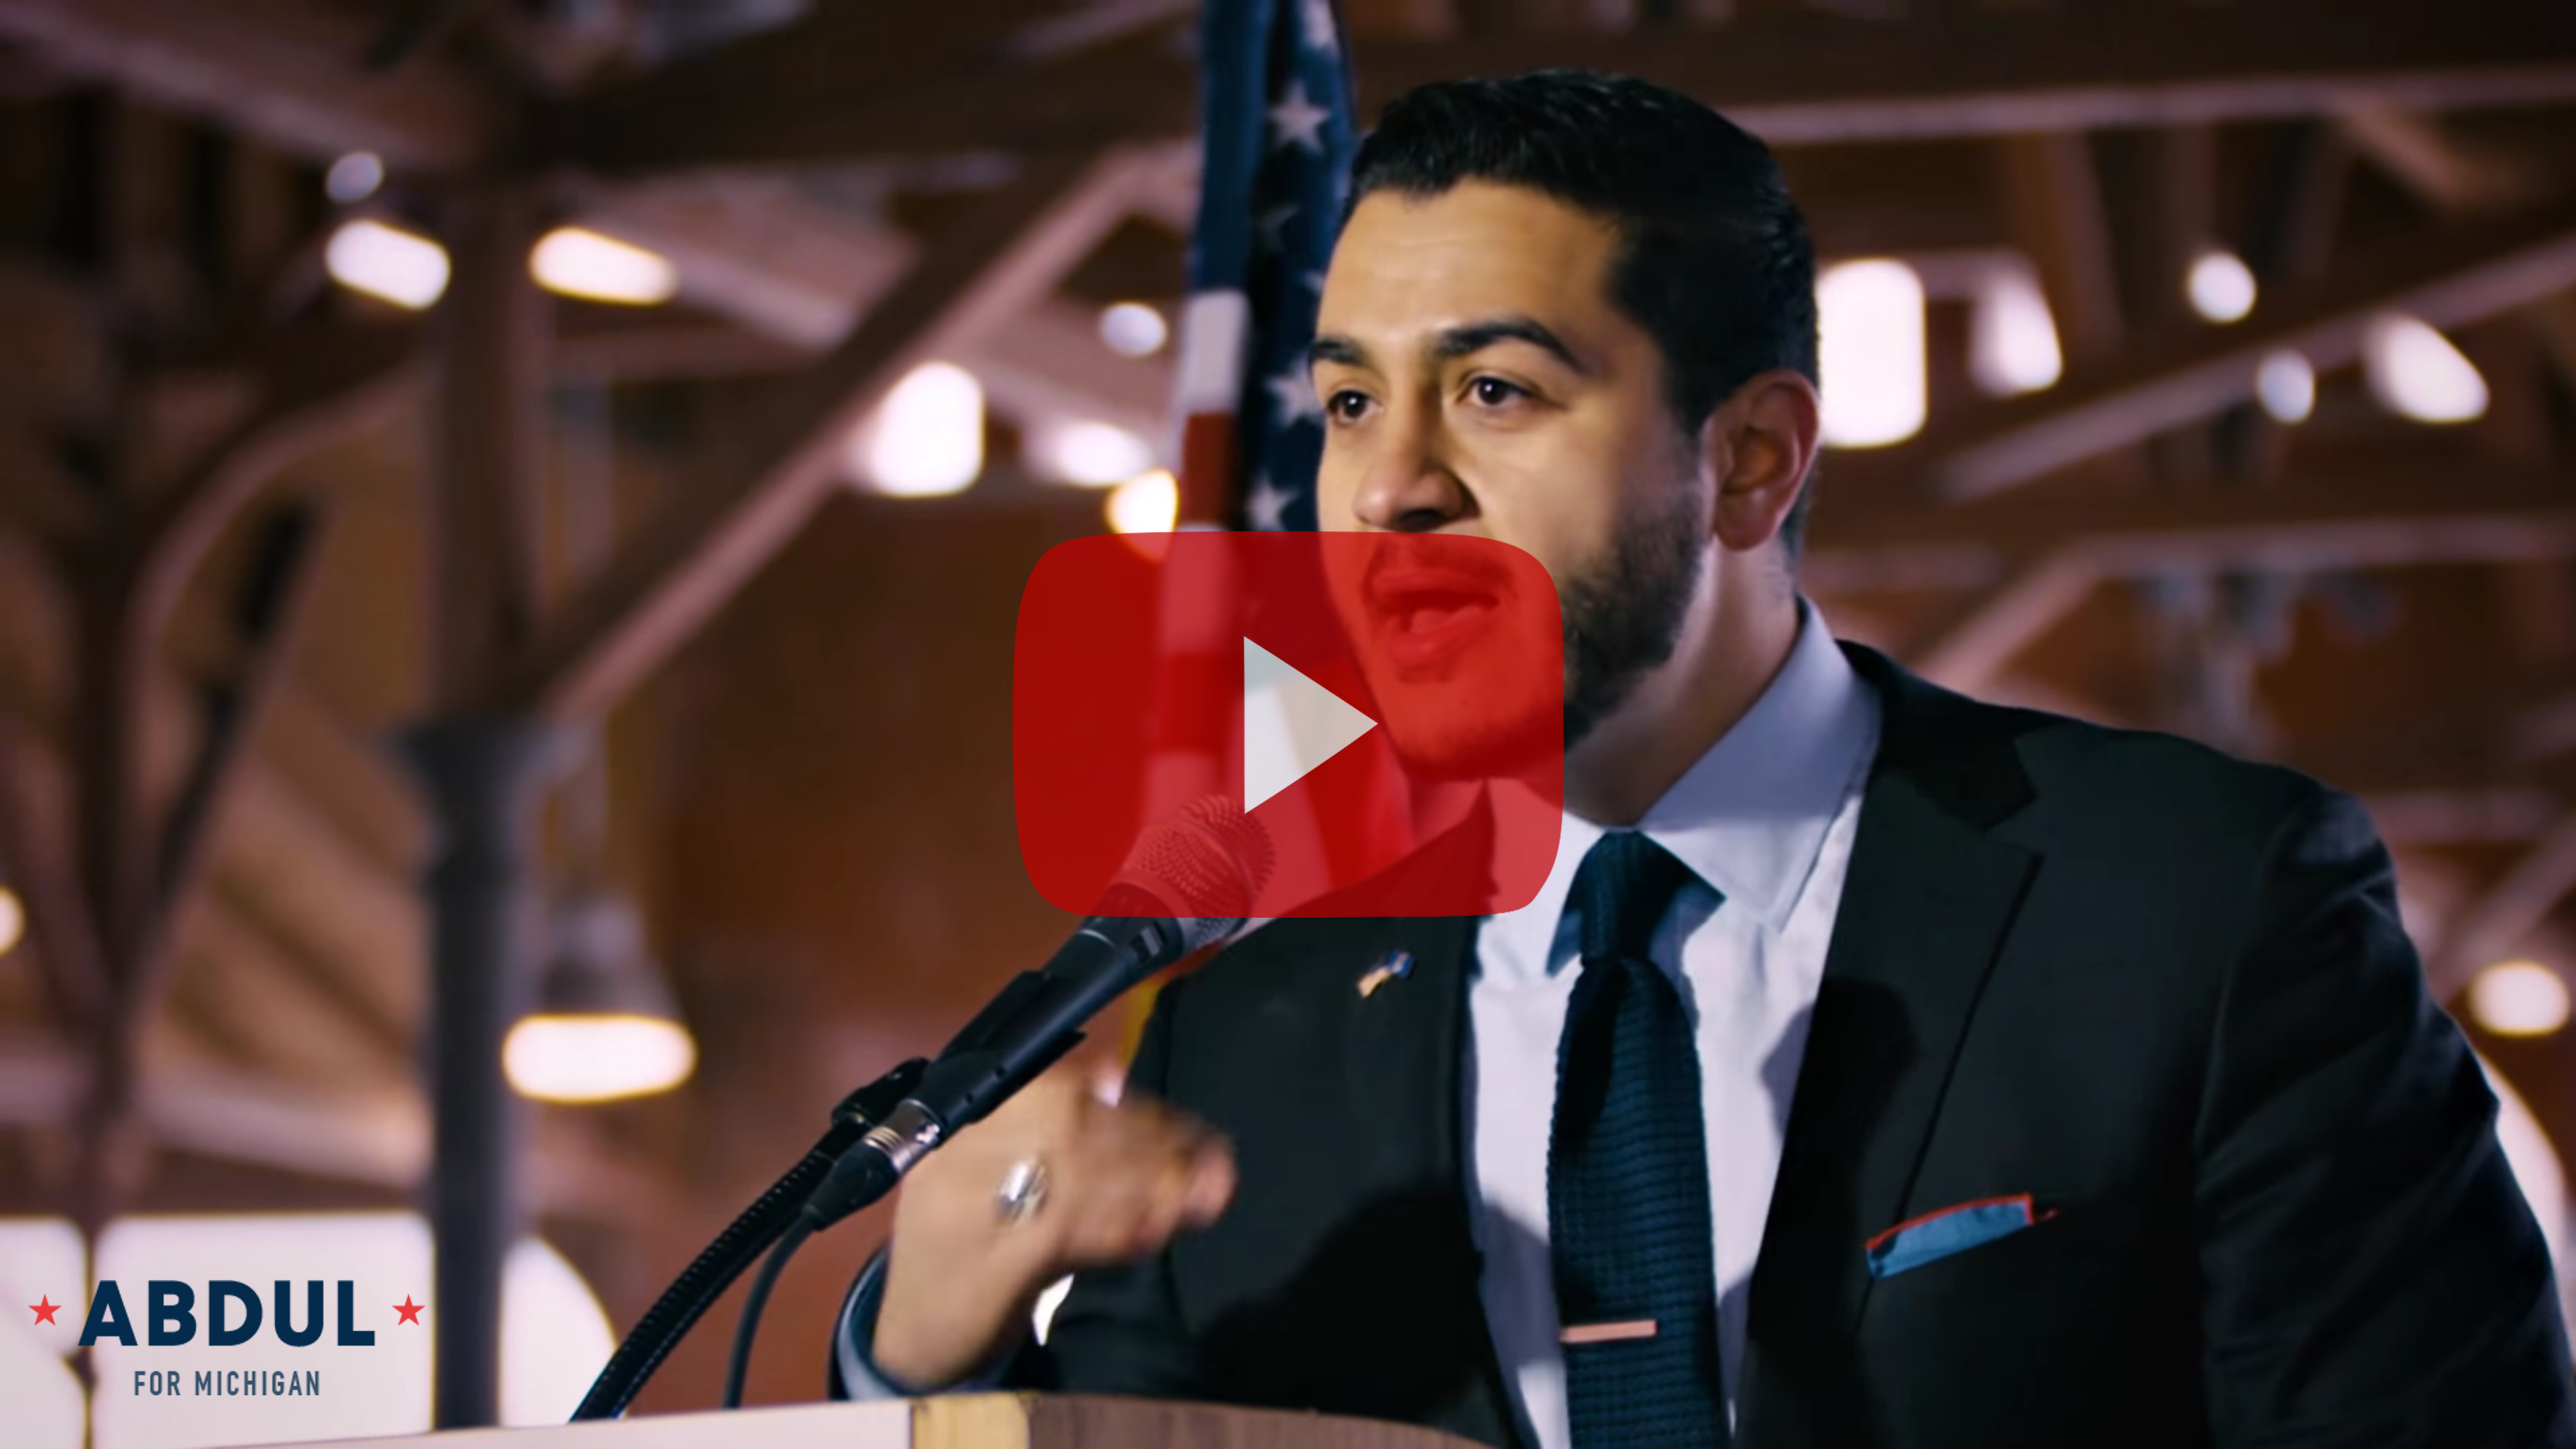 Abdul El-Sayed for Michigan